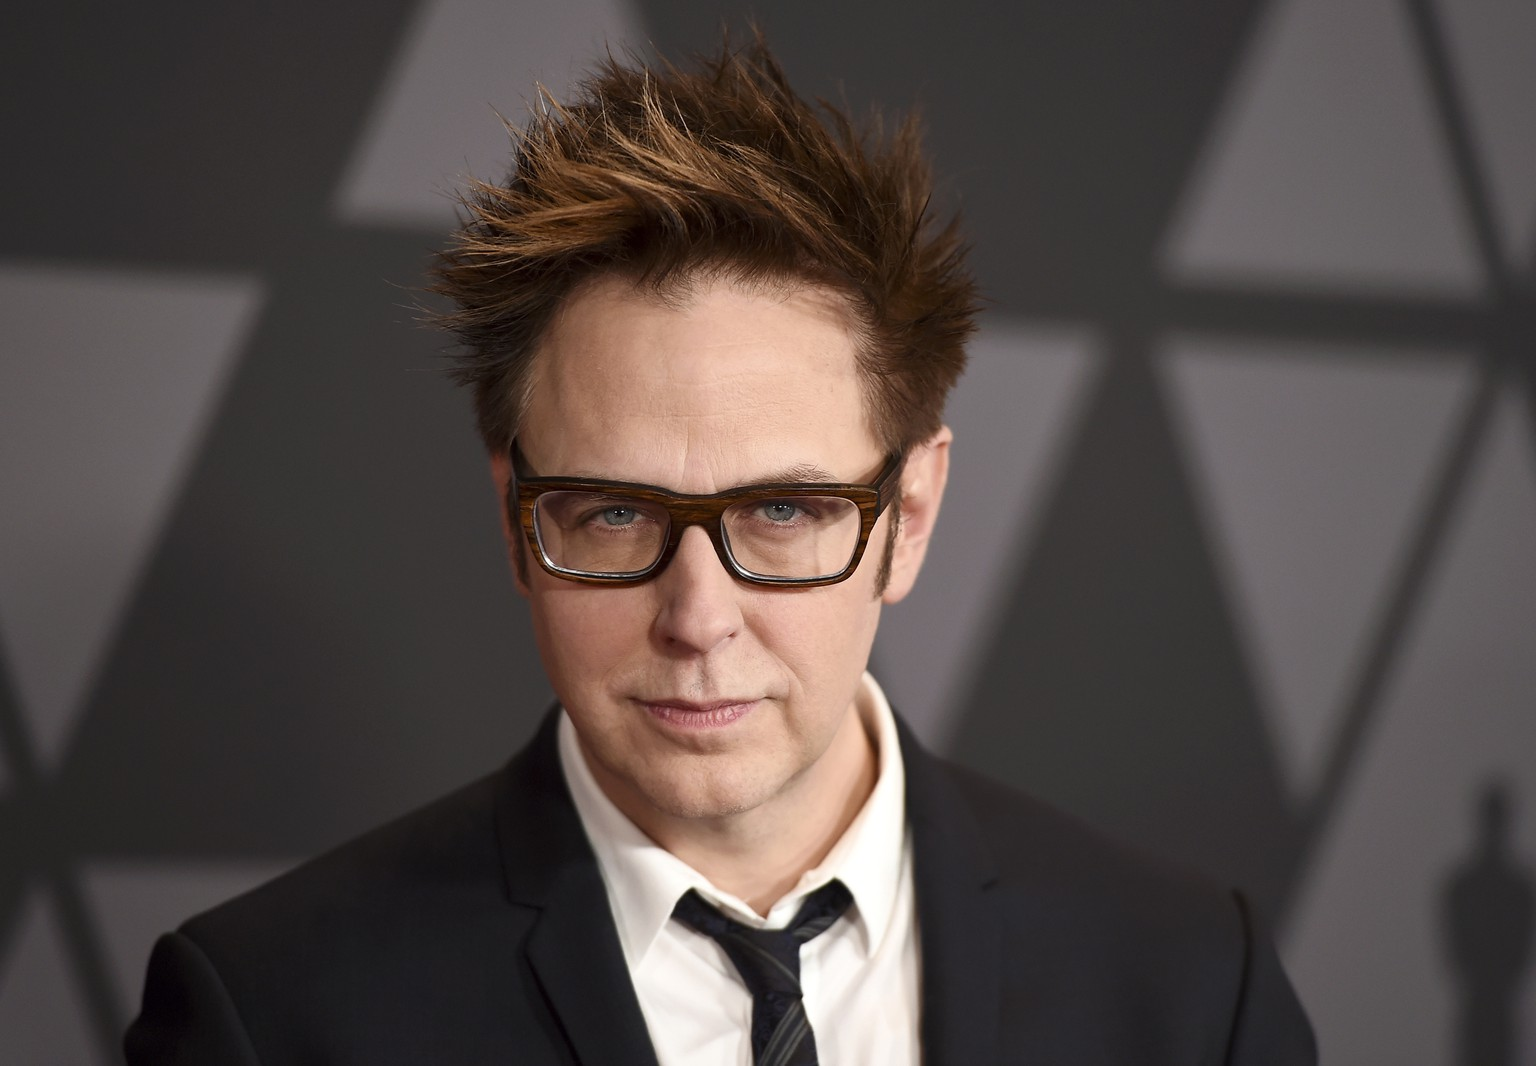 "FILE - In this Nov. 11, 2017 file photo, filmmaker James Gunn arrives at the 9th annual Governors Awards in Los Angeles. Gunn has been fired as director of ""Guardians of the Galaxy 3"" because of old tweets that recently emerged where he joked about subjects like pedophilia and rape. Walt Disney Studios Chairman Alan Horn said in a statement Friday, July 20, 2018, that the tweets are indefensible, and the studio has severed ties with Gunn. (Photo by Jordan Strauss/Invision/AP, File)"